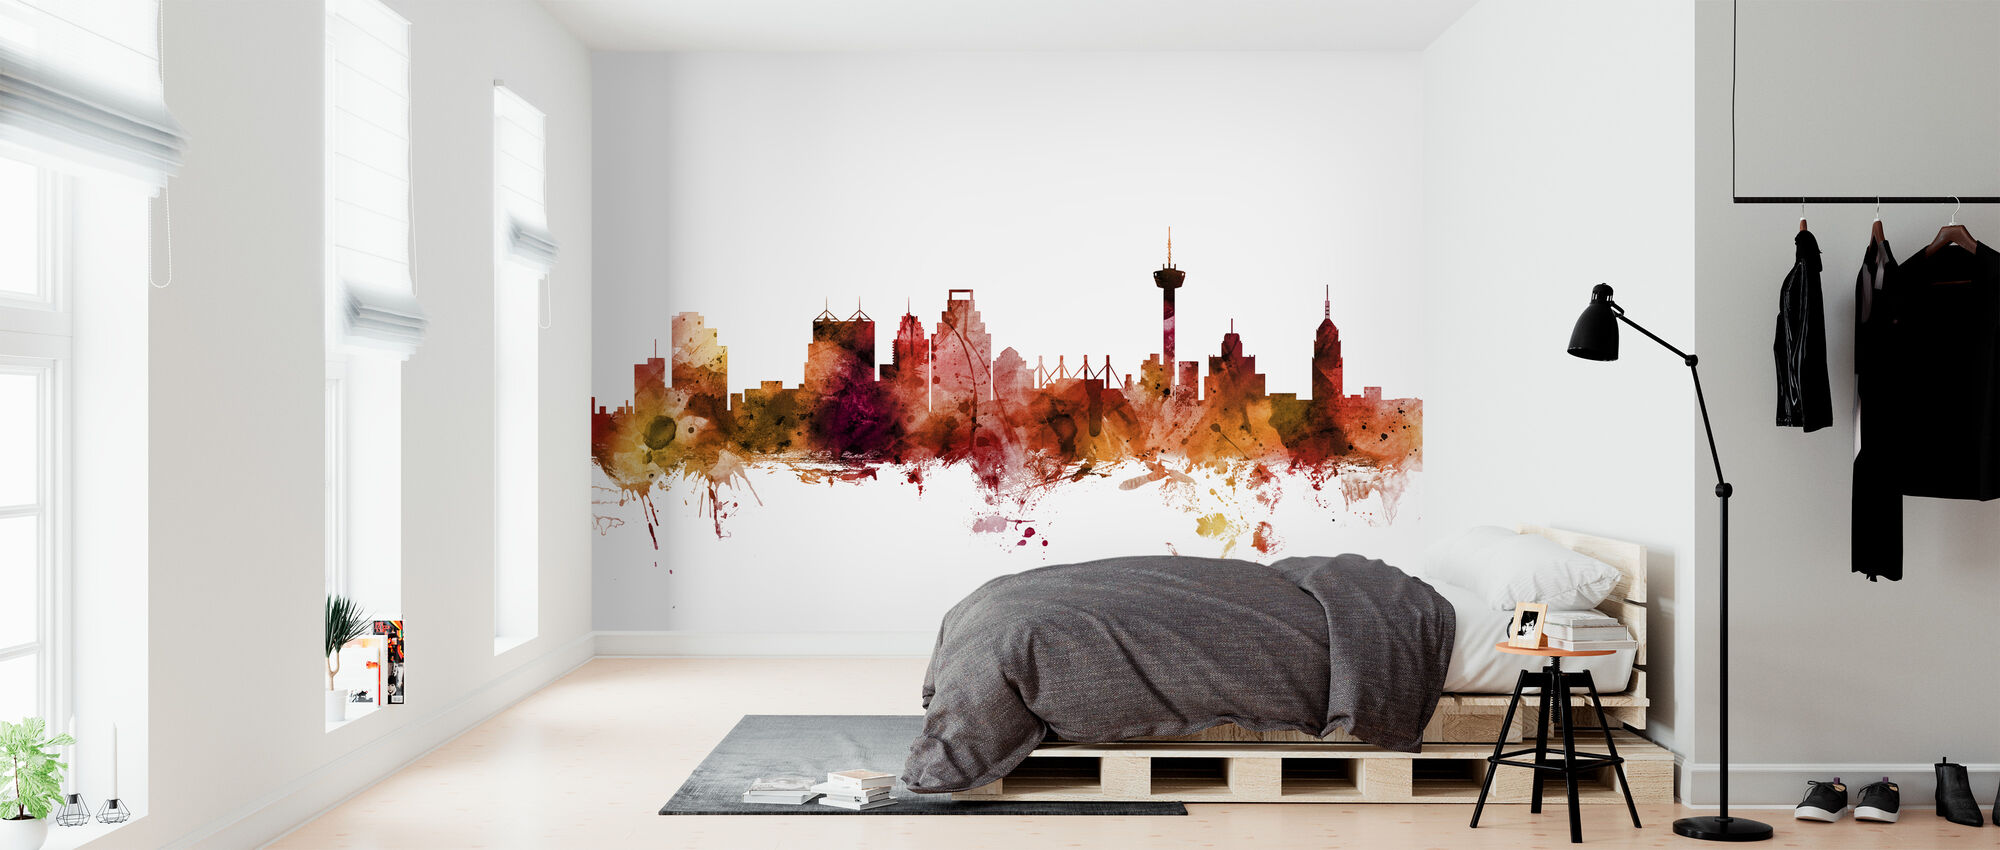 San Antonio Texas Skyline - Wallpaper - Bedroom